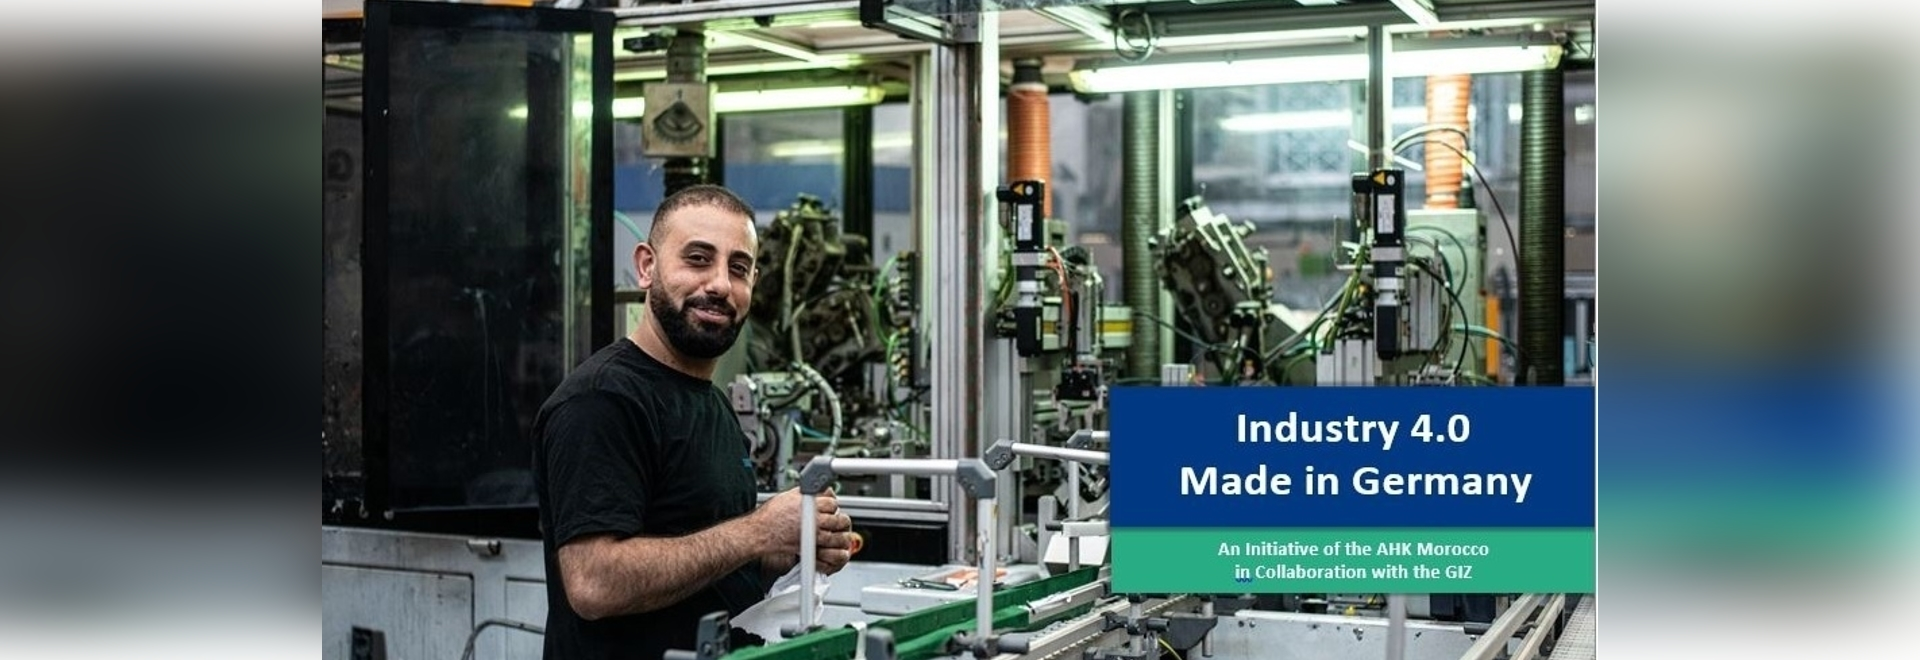 Industry 4.0 Made in Germany